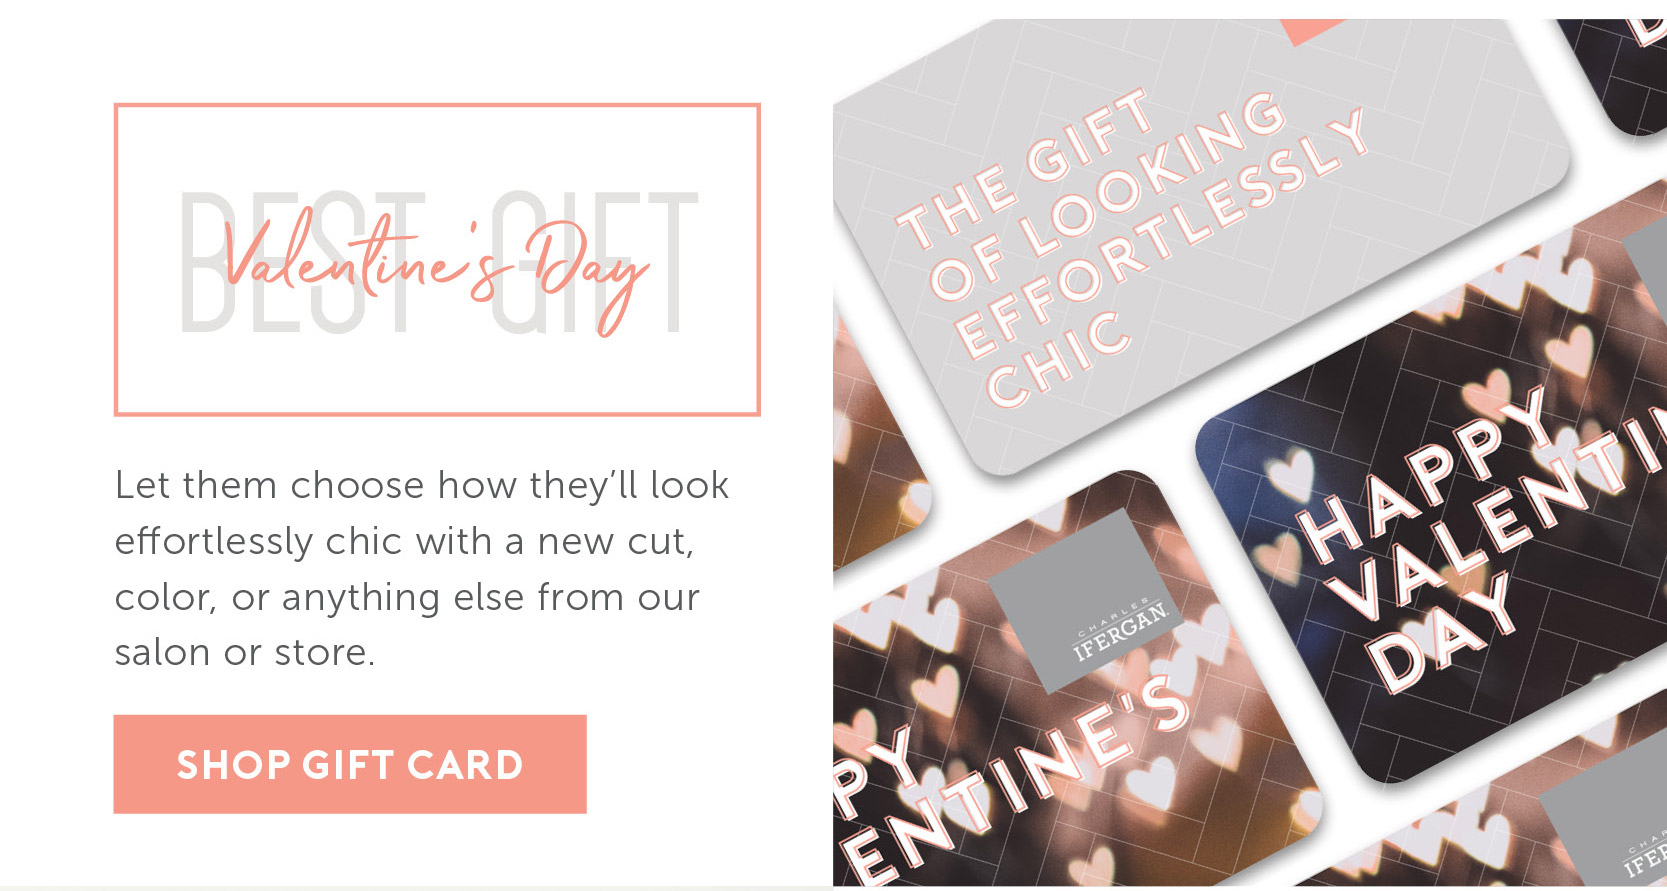 Valentine's Day – Let them choose how they'll look effortlessly chic | Shop Gift Cards